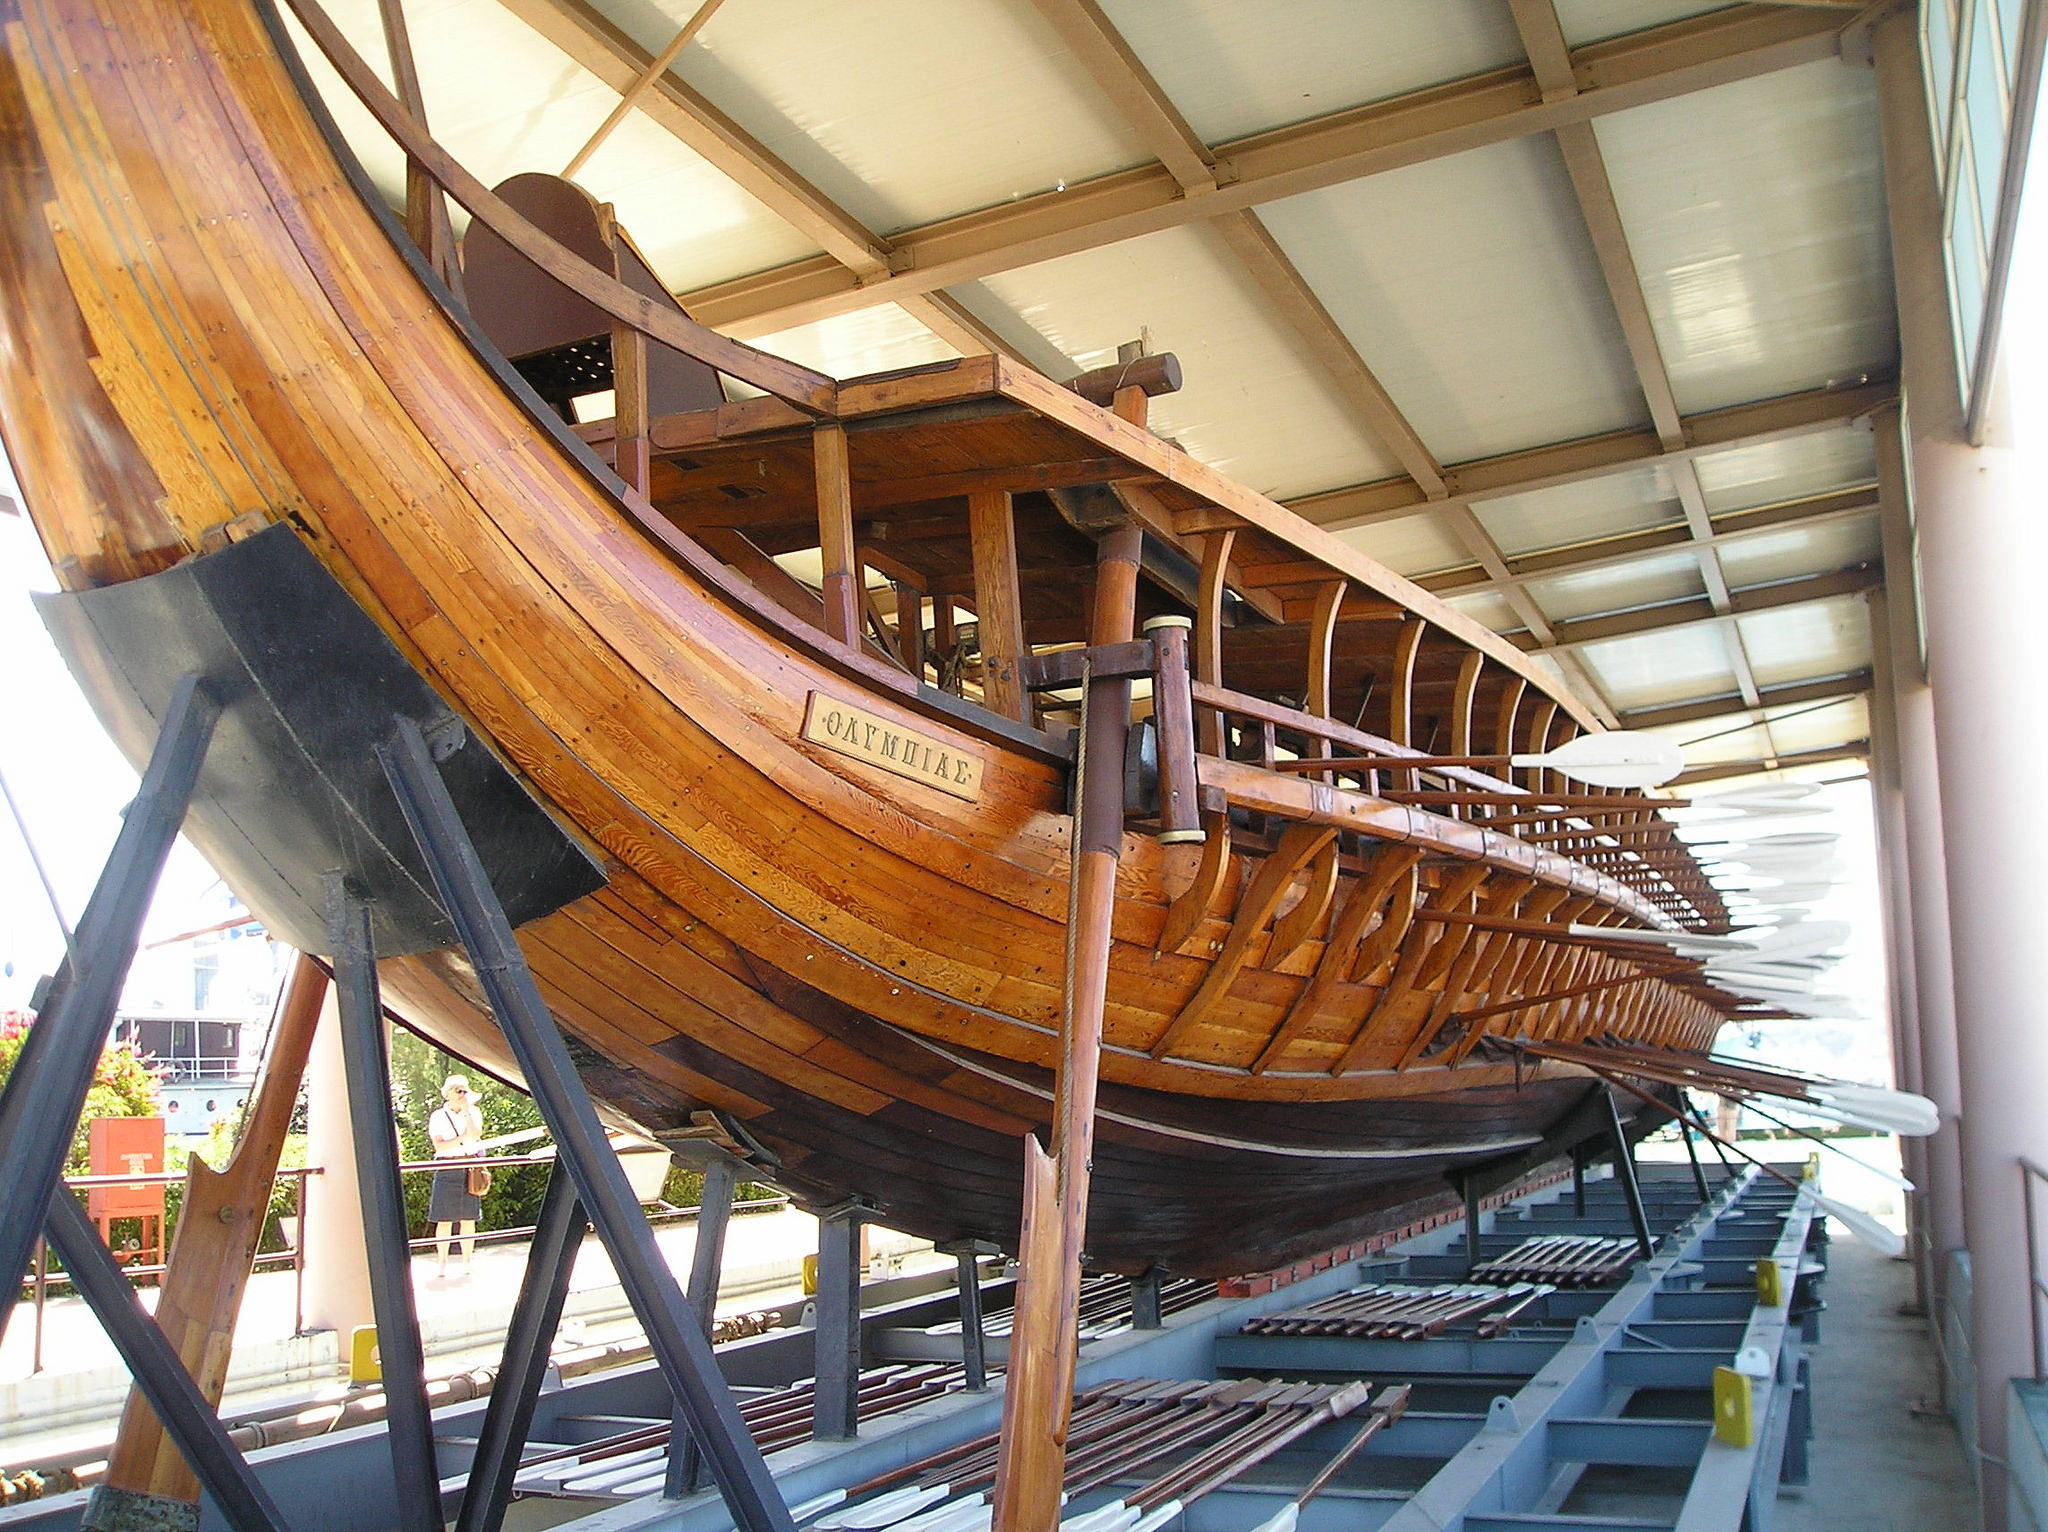 Themistocles was adamant in the construction of a large Athenian fleet, built up mainly of the Trireme class, pictured above. (Creative Commons)